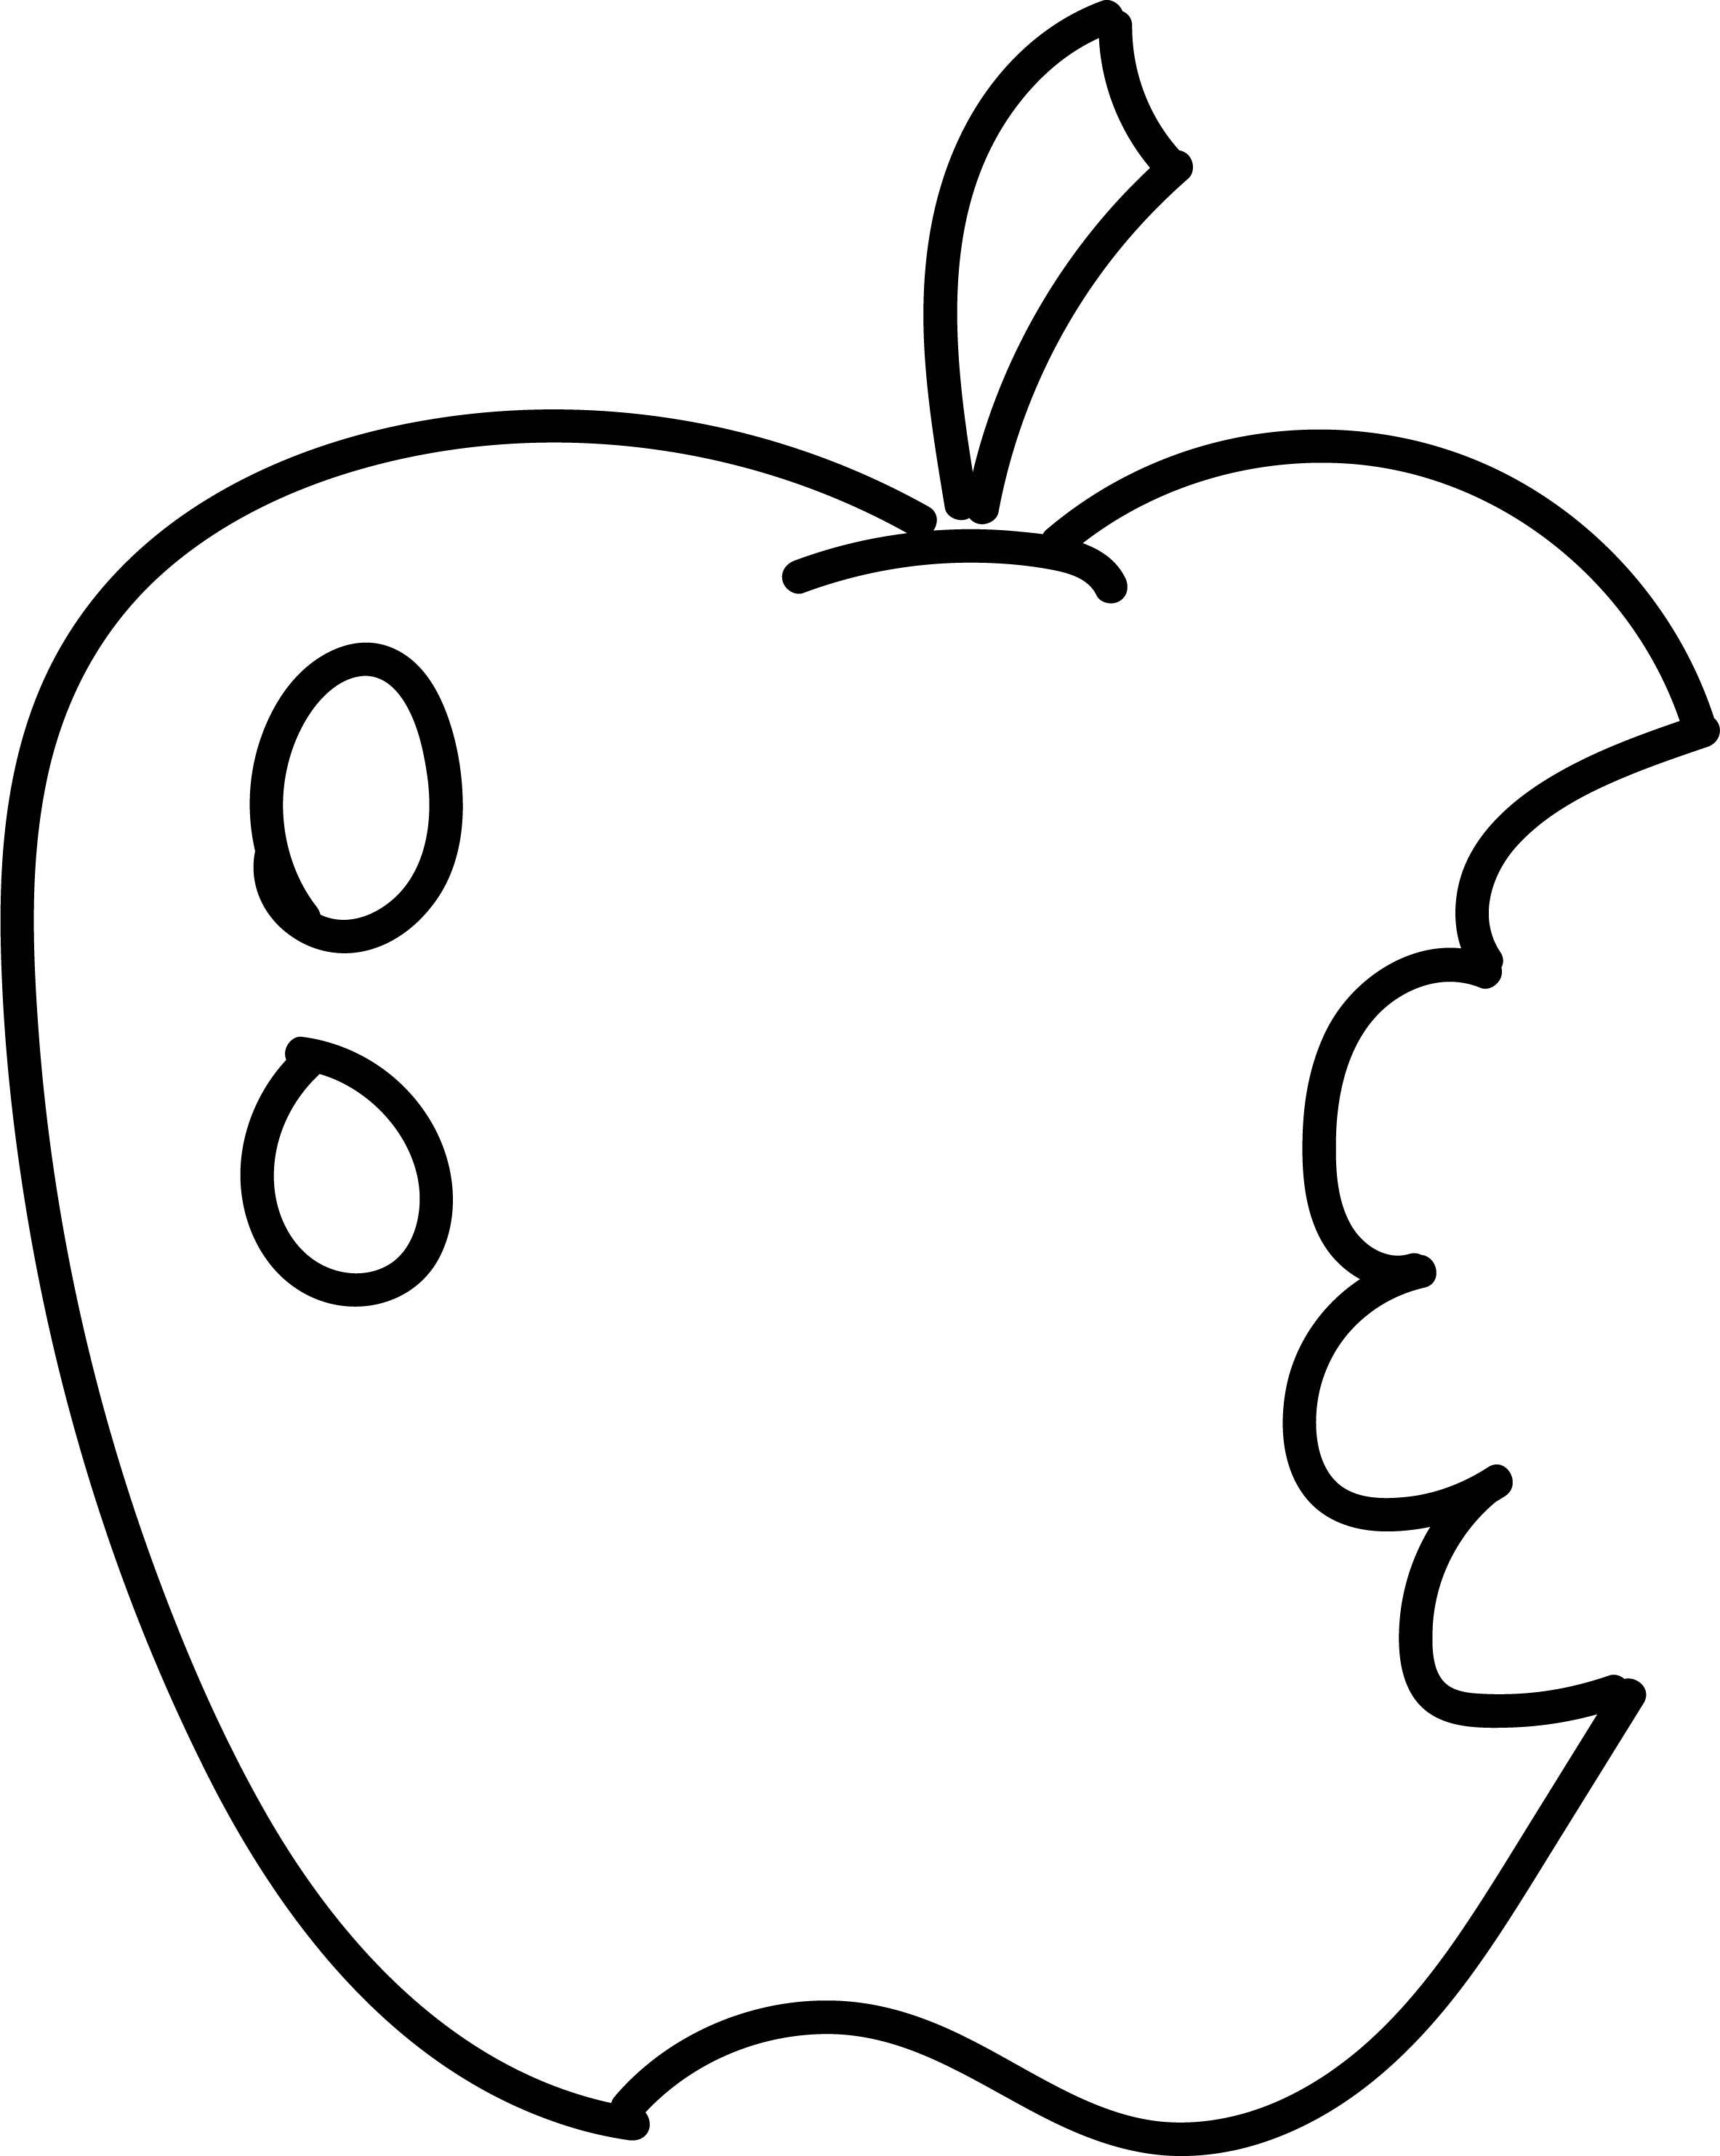 pictures of apples to color apple coloring pages to print color pictures apples to of